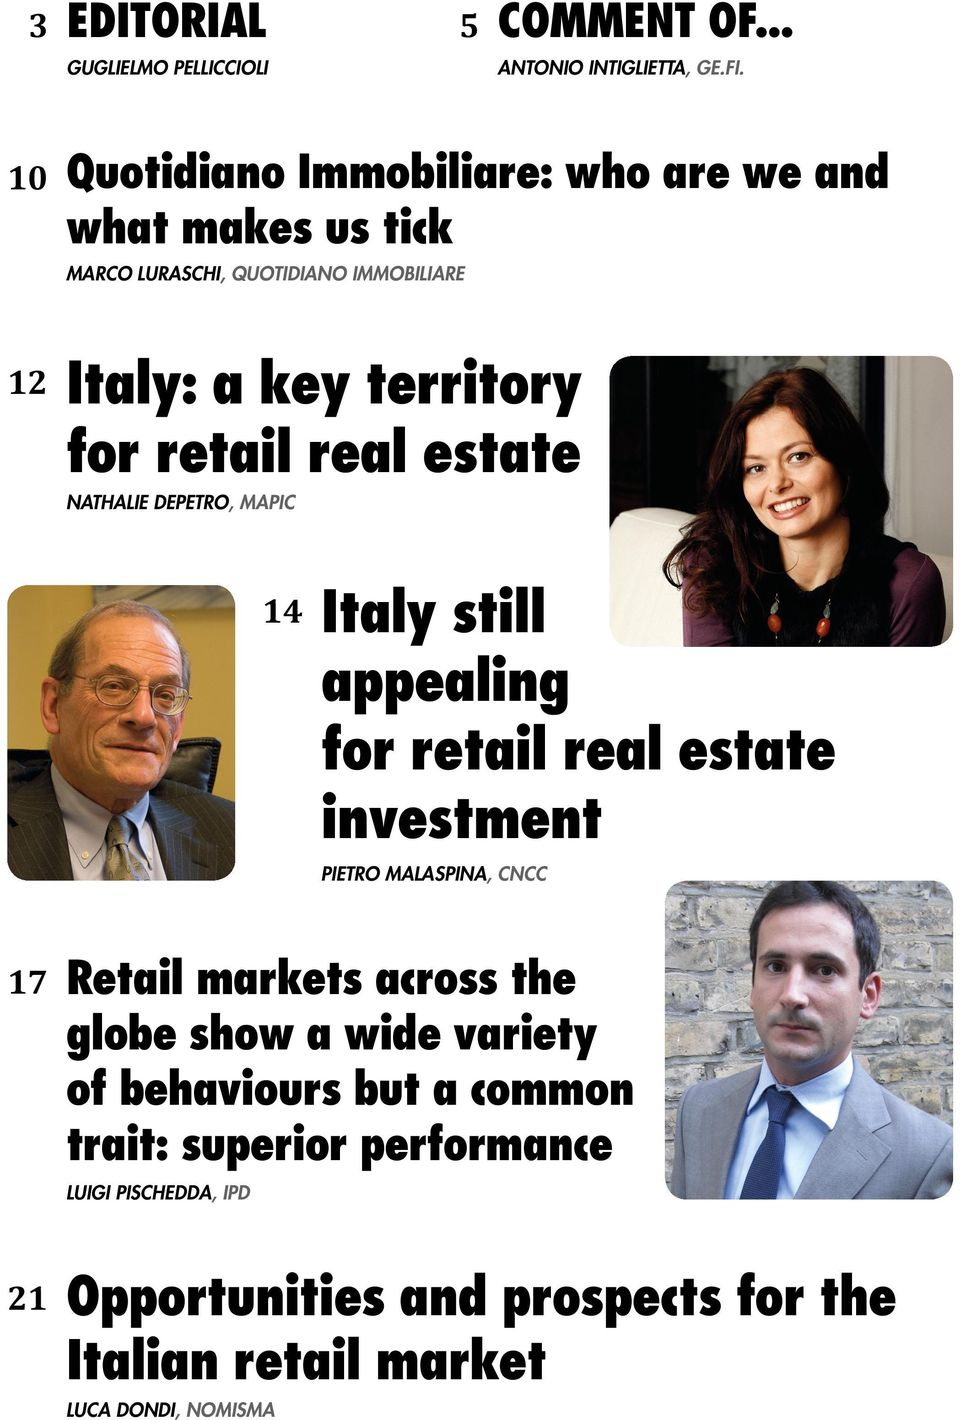 retail real estate NATHALIE DEPETRO, MAPIC 14 Italy still appealing for retail real estate investment PIETRO MALASPINA, CNCC 17 Retail